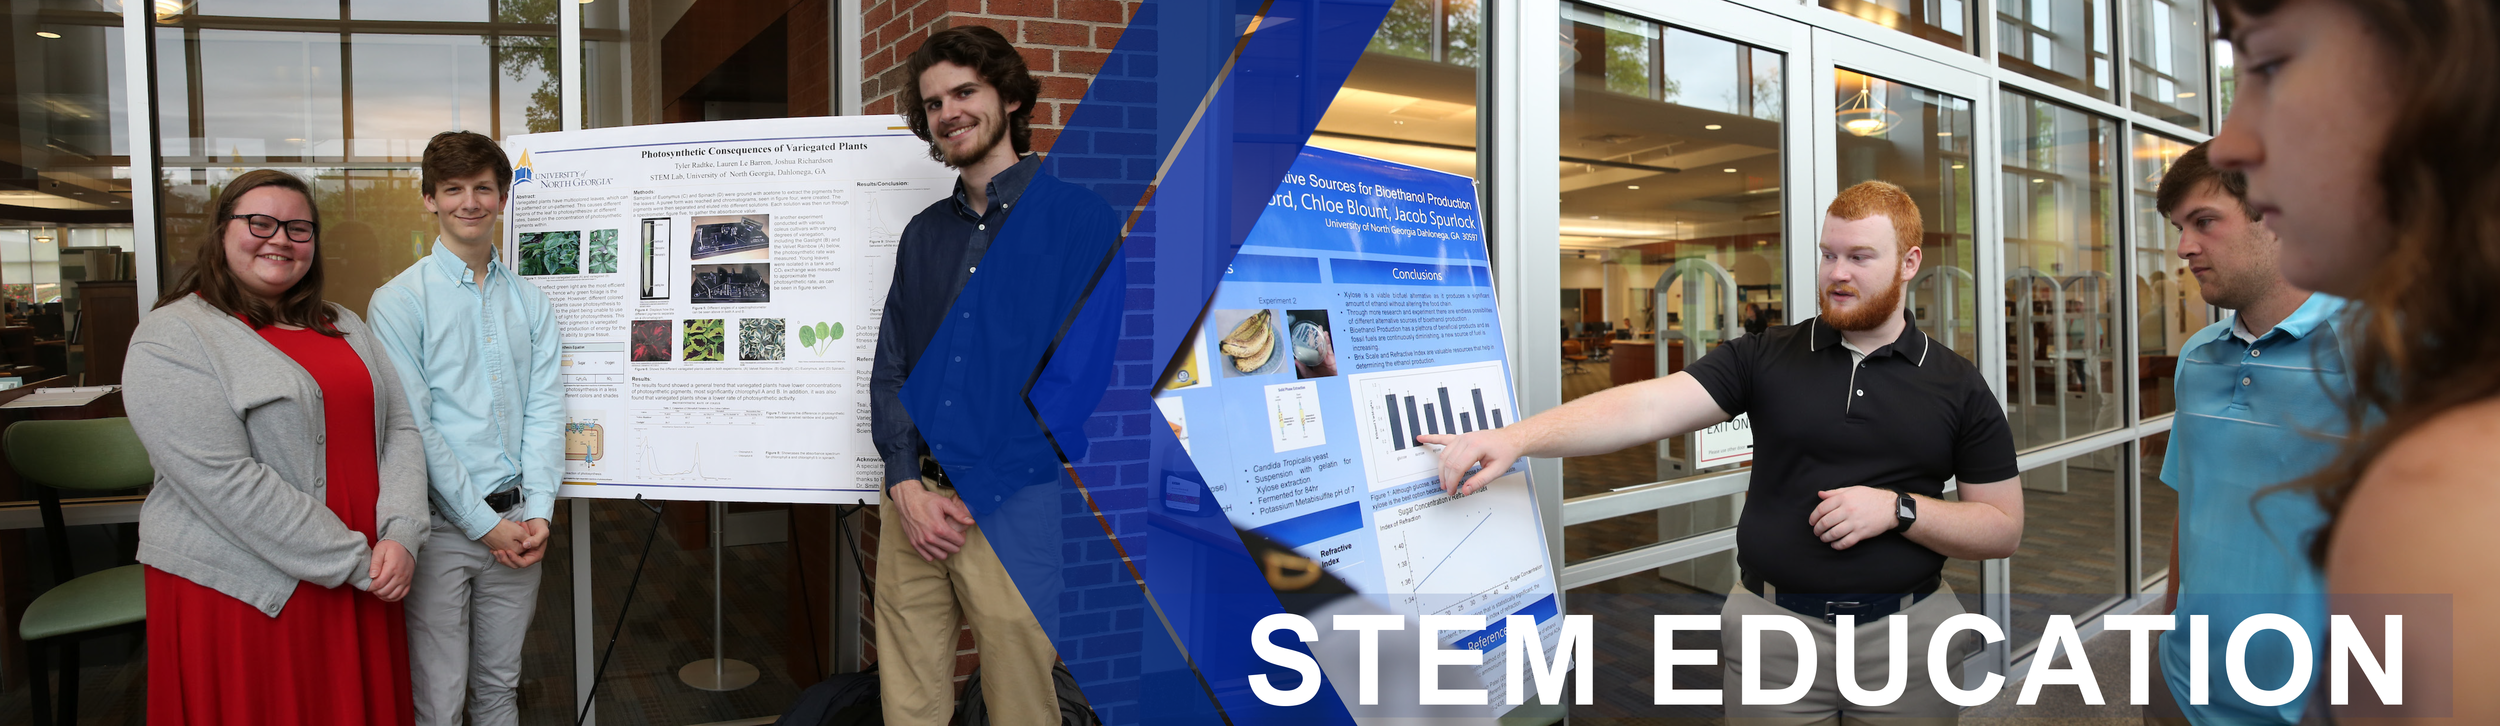 Stem Education Header banner: First image shows three STEM education students standing in front of a poster board. The second image shows a STEM education student explaining his project.